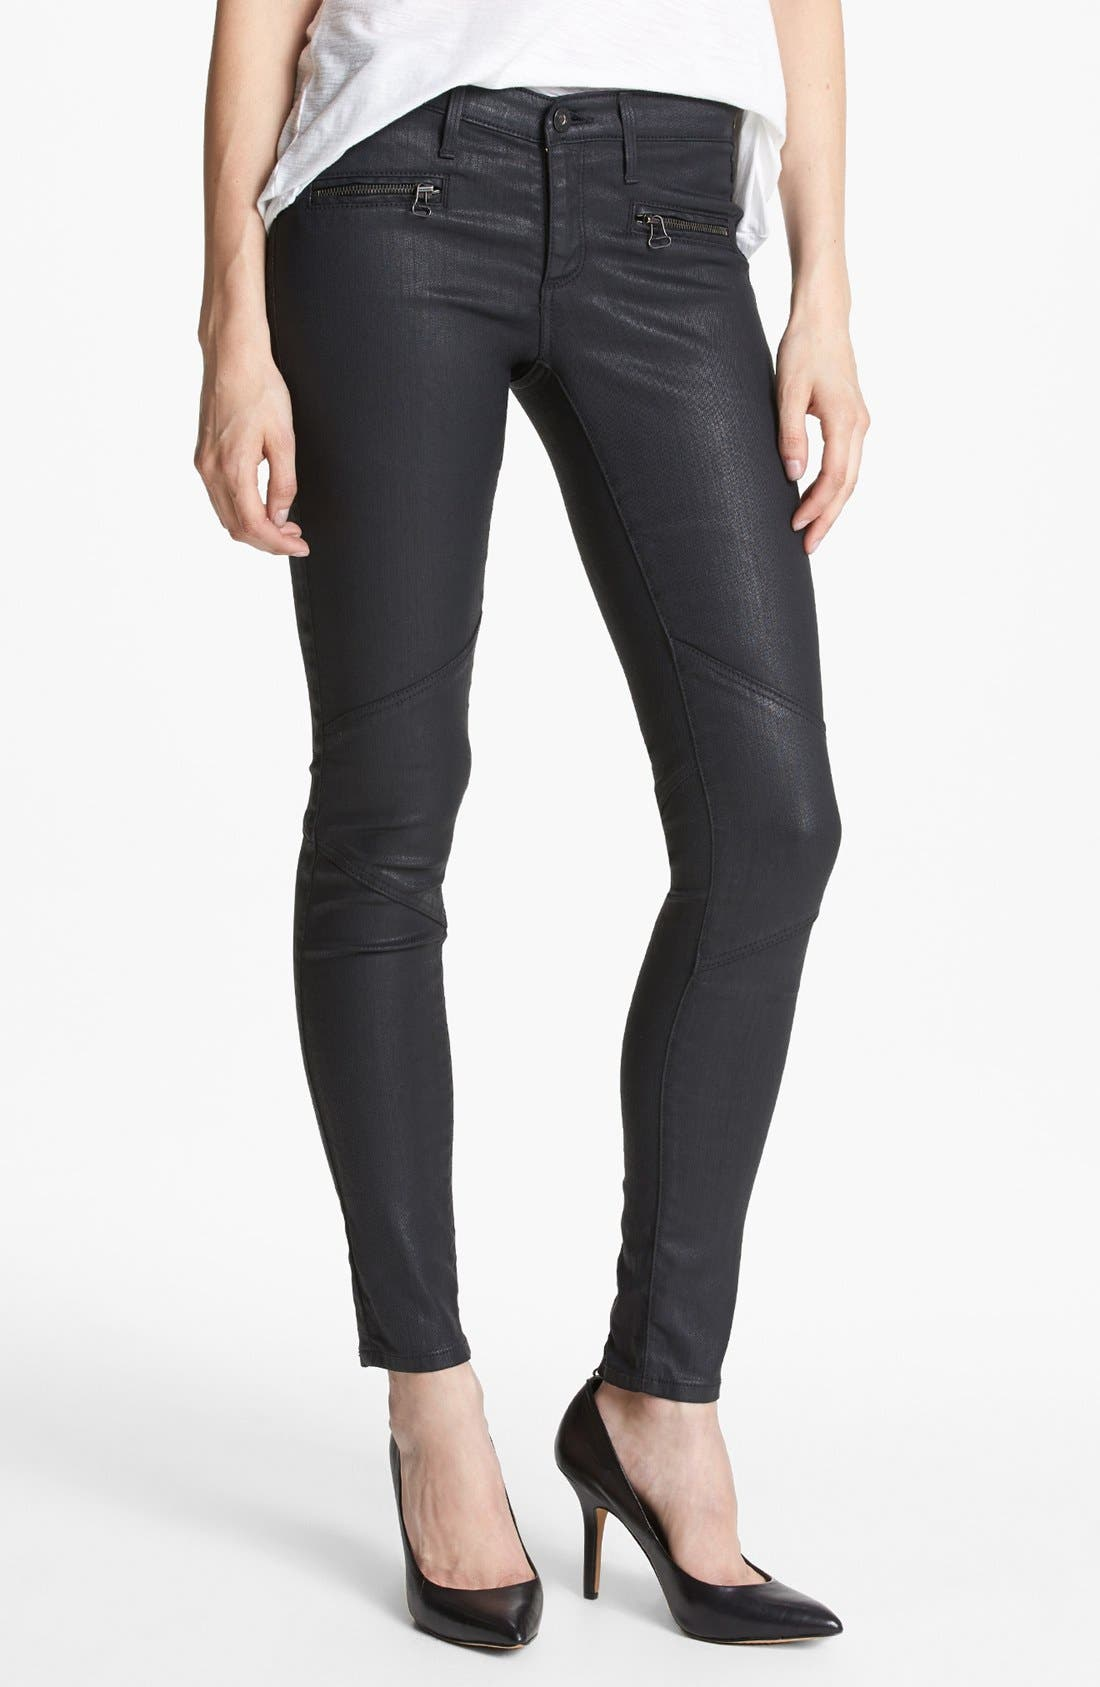 Alternate Image 1 Selected - AG 'The Motto' Coated Ankle Leggings (BSC)